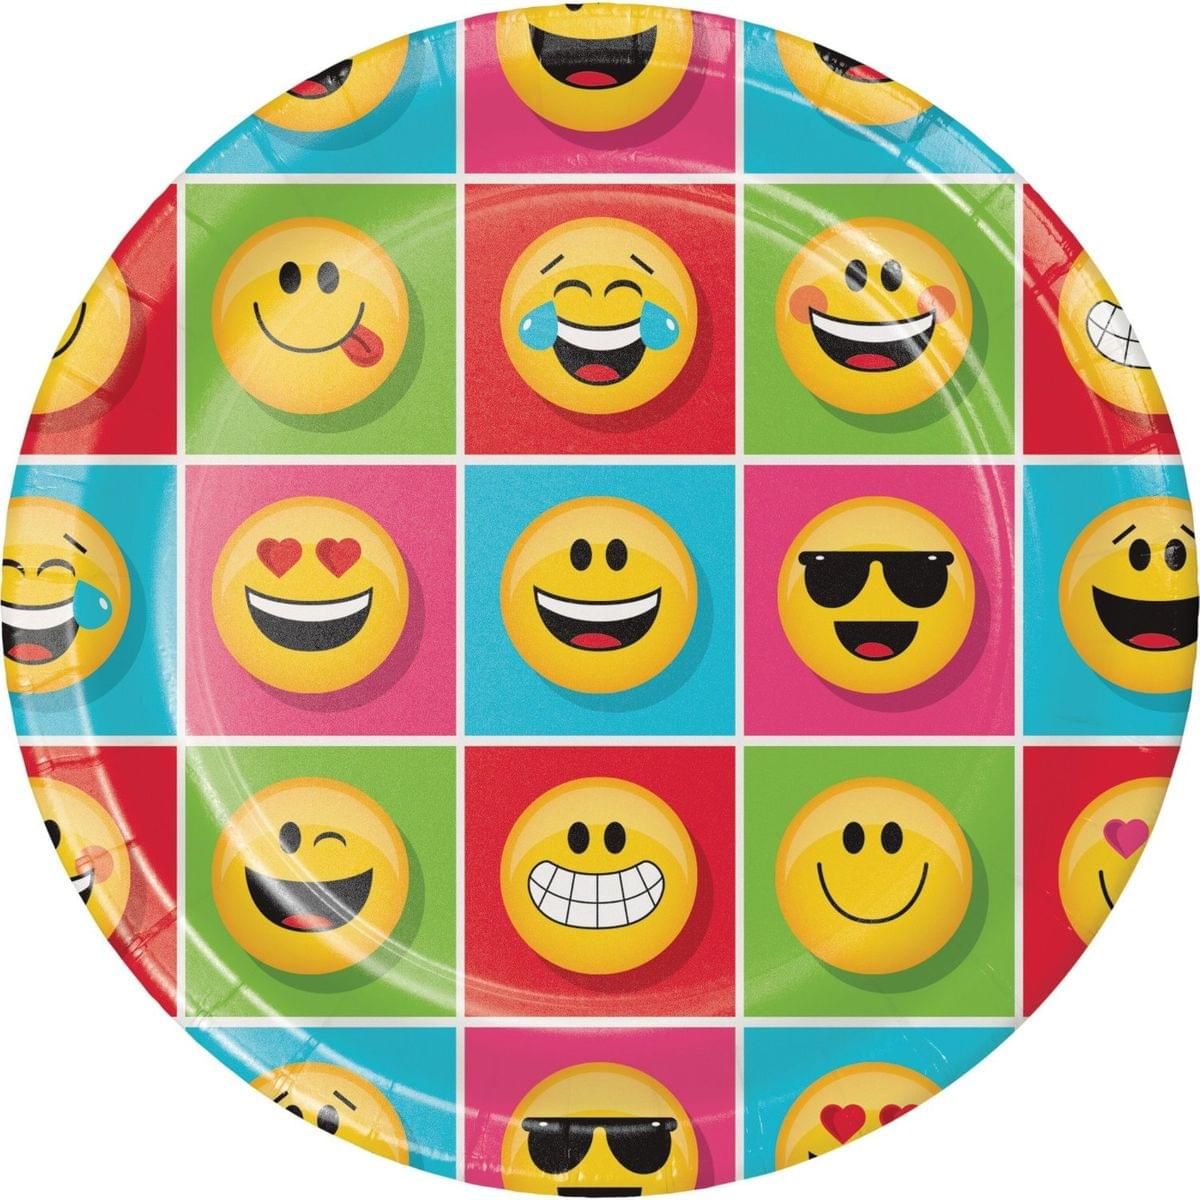 "Show Your Emojions 8.75"" Paper Dinner Plates: 8 Count"